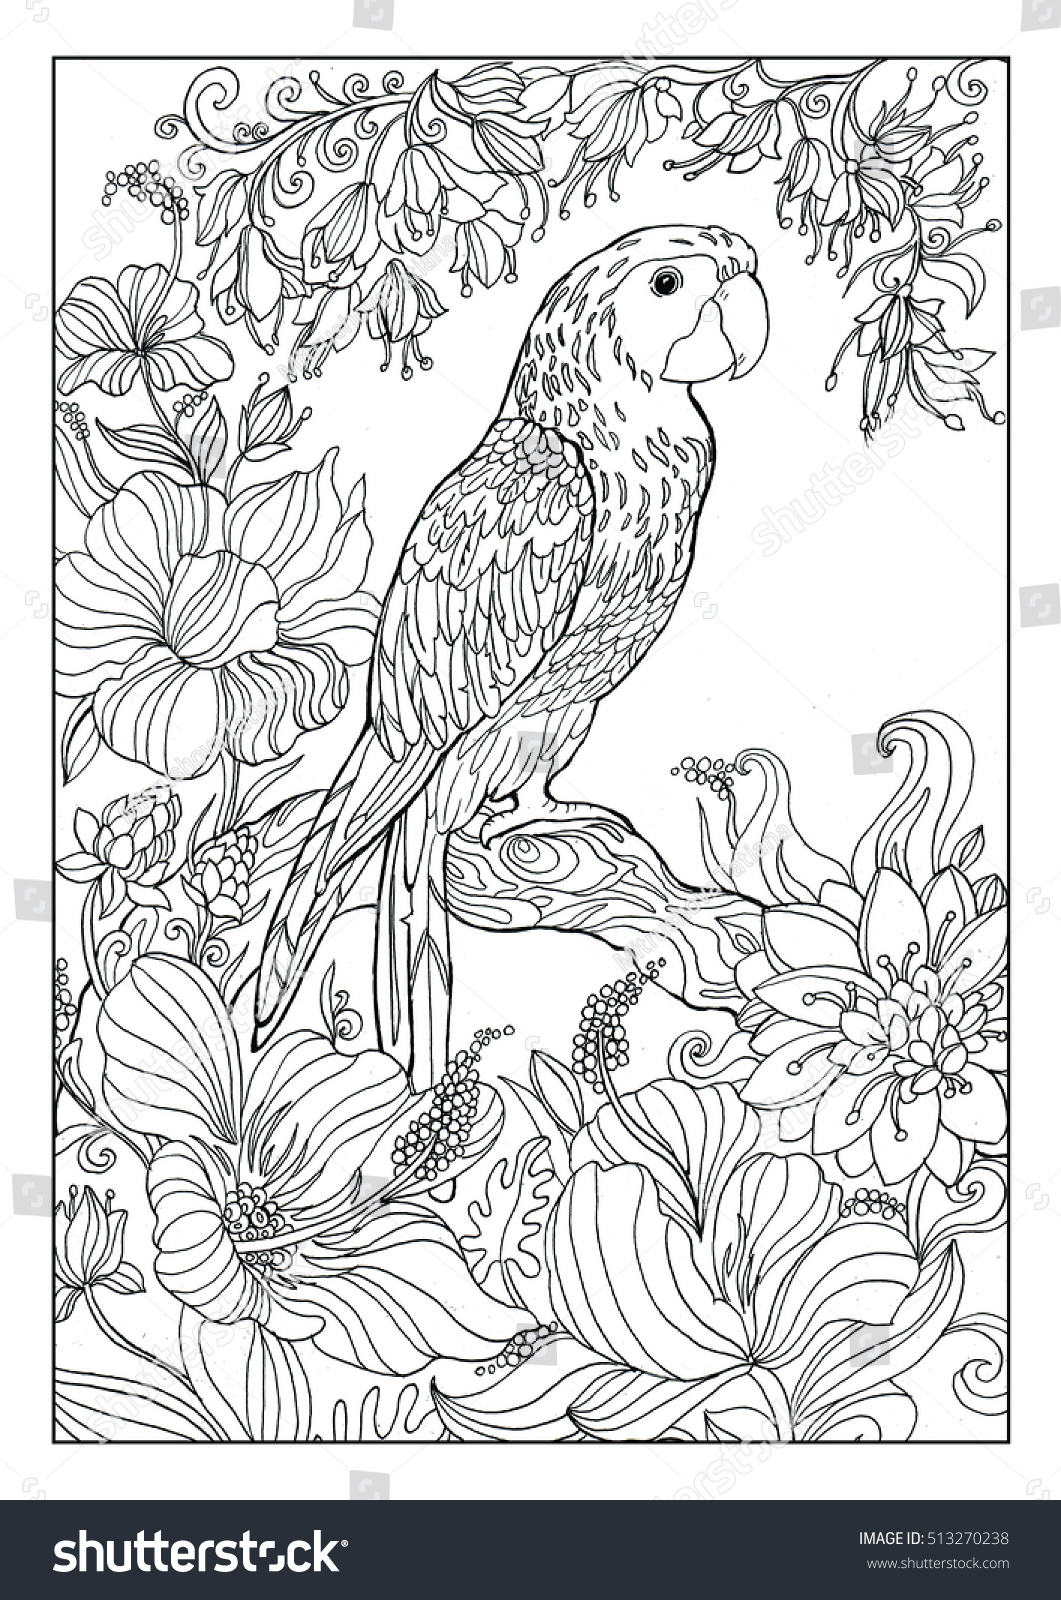 Parrot Coloring Pages Adults Stock Illustration 513270238 - Shutterstock